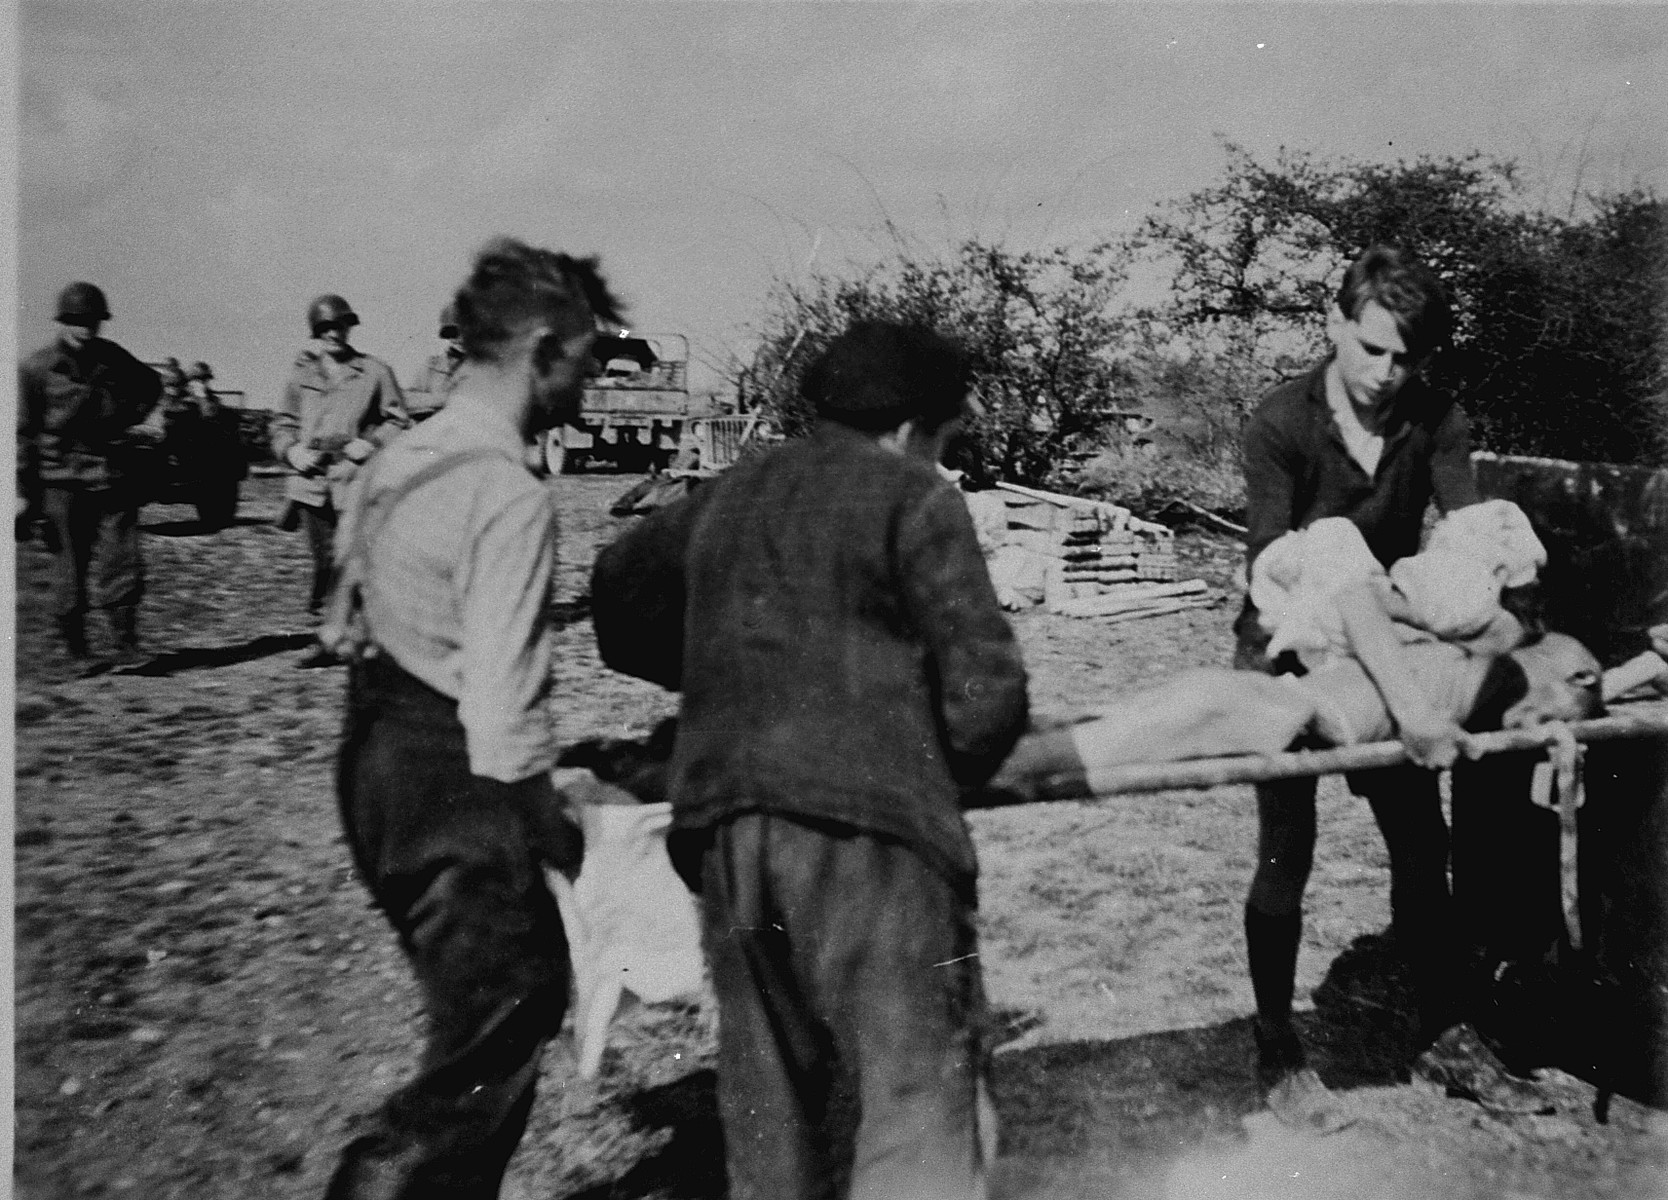 German civilians from a nearby town load corpses onto a cart for transportation to a mass grave.